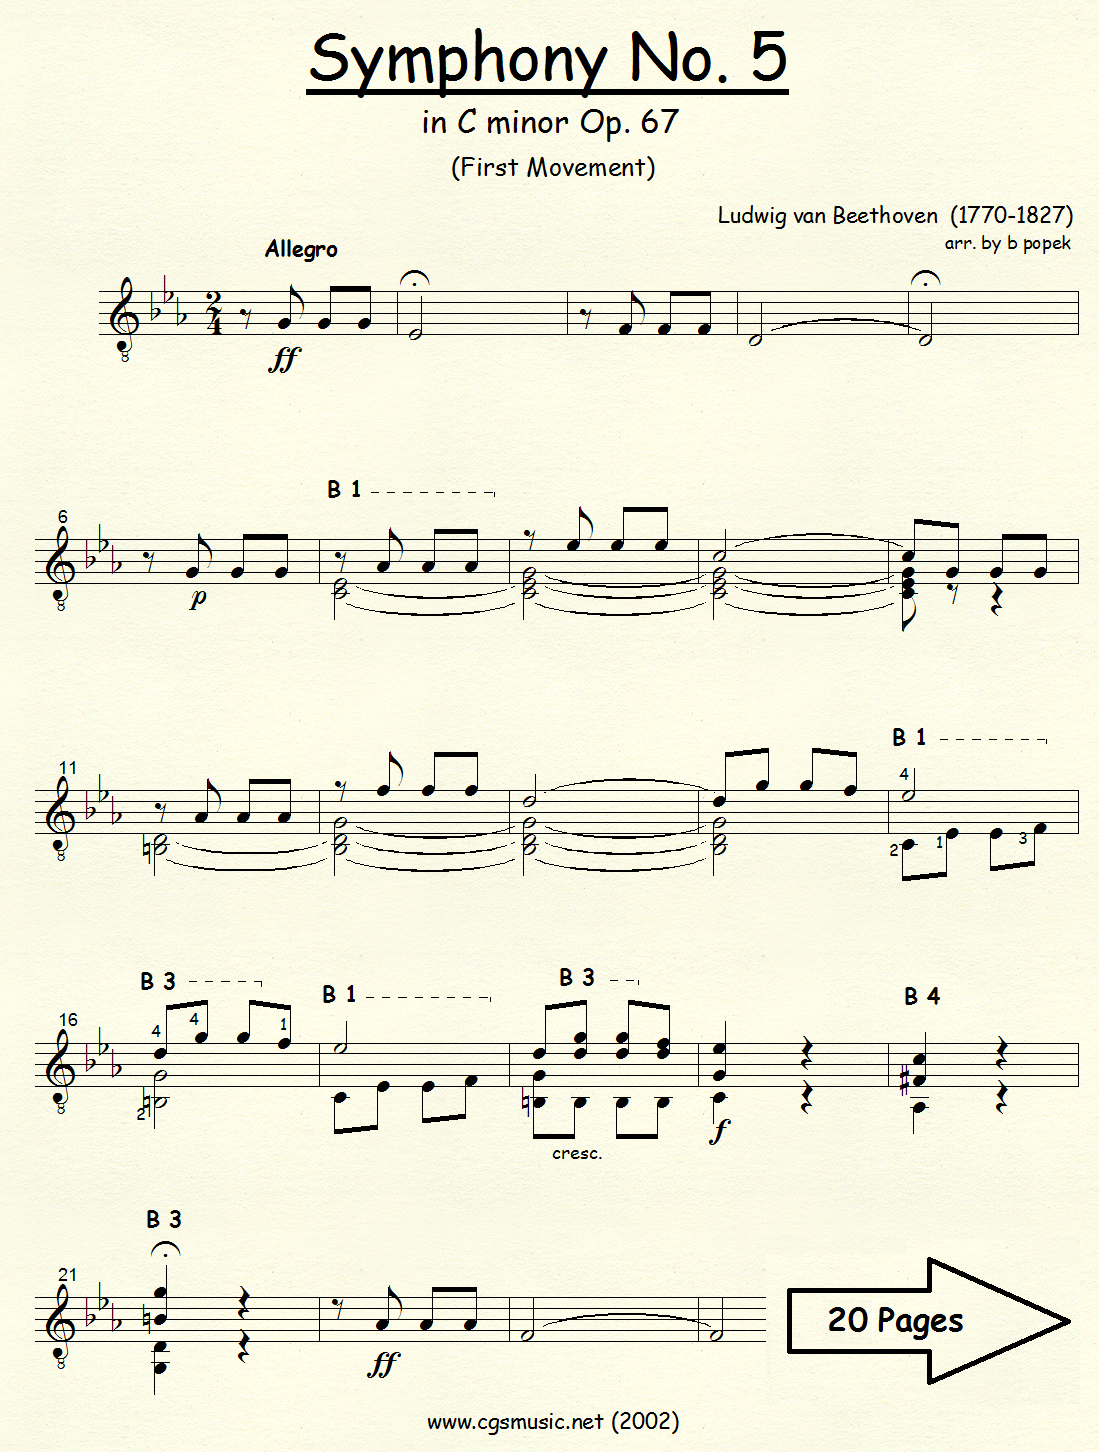 Symphony # 5 in C minor (Beethoven) for Classical Guitar in Standard Notation